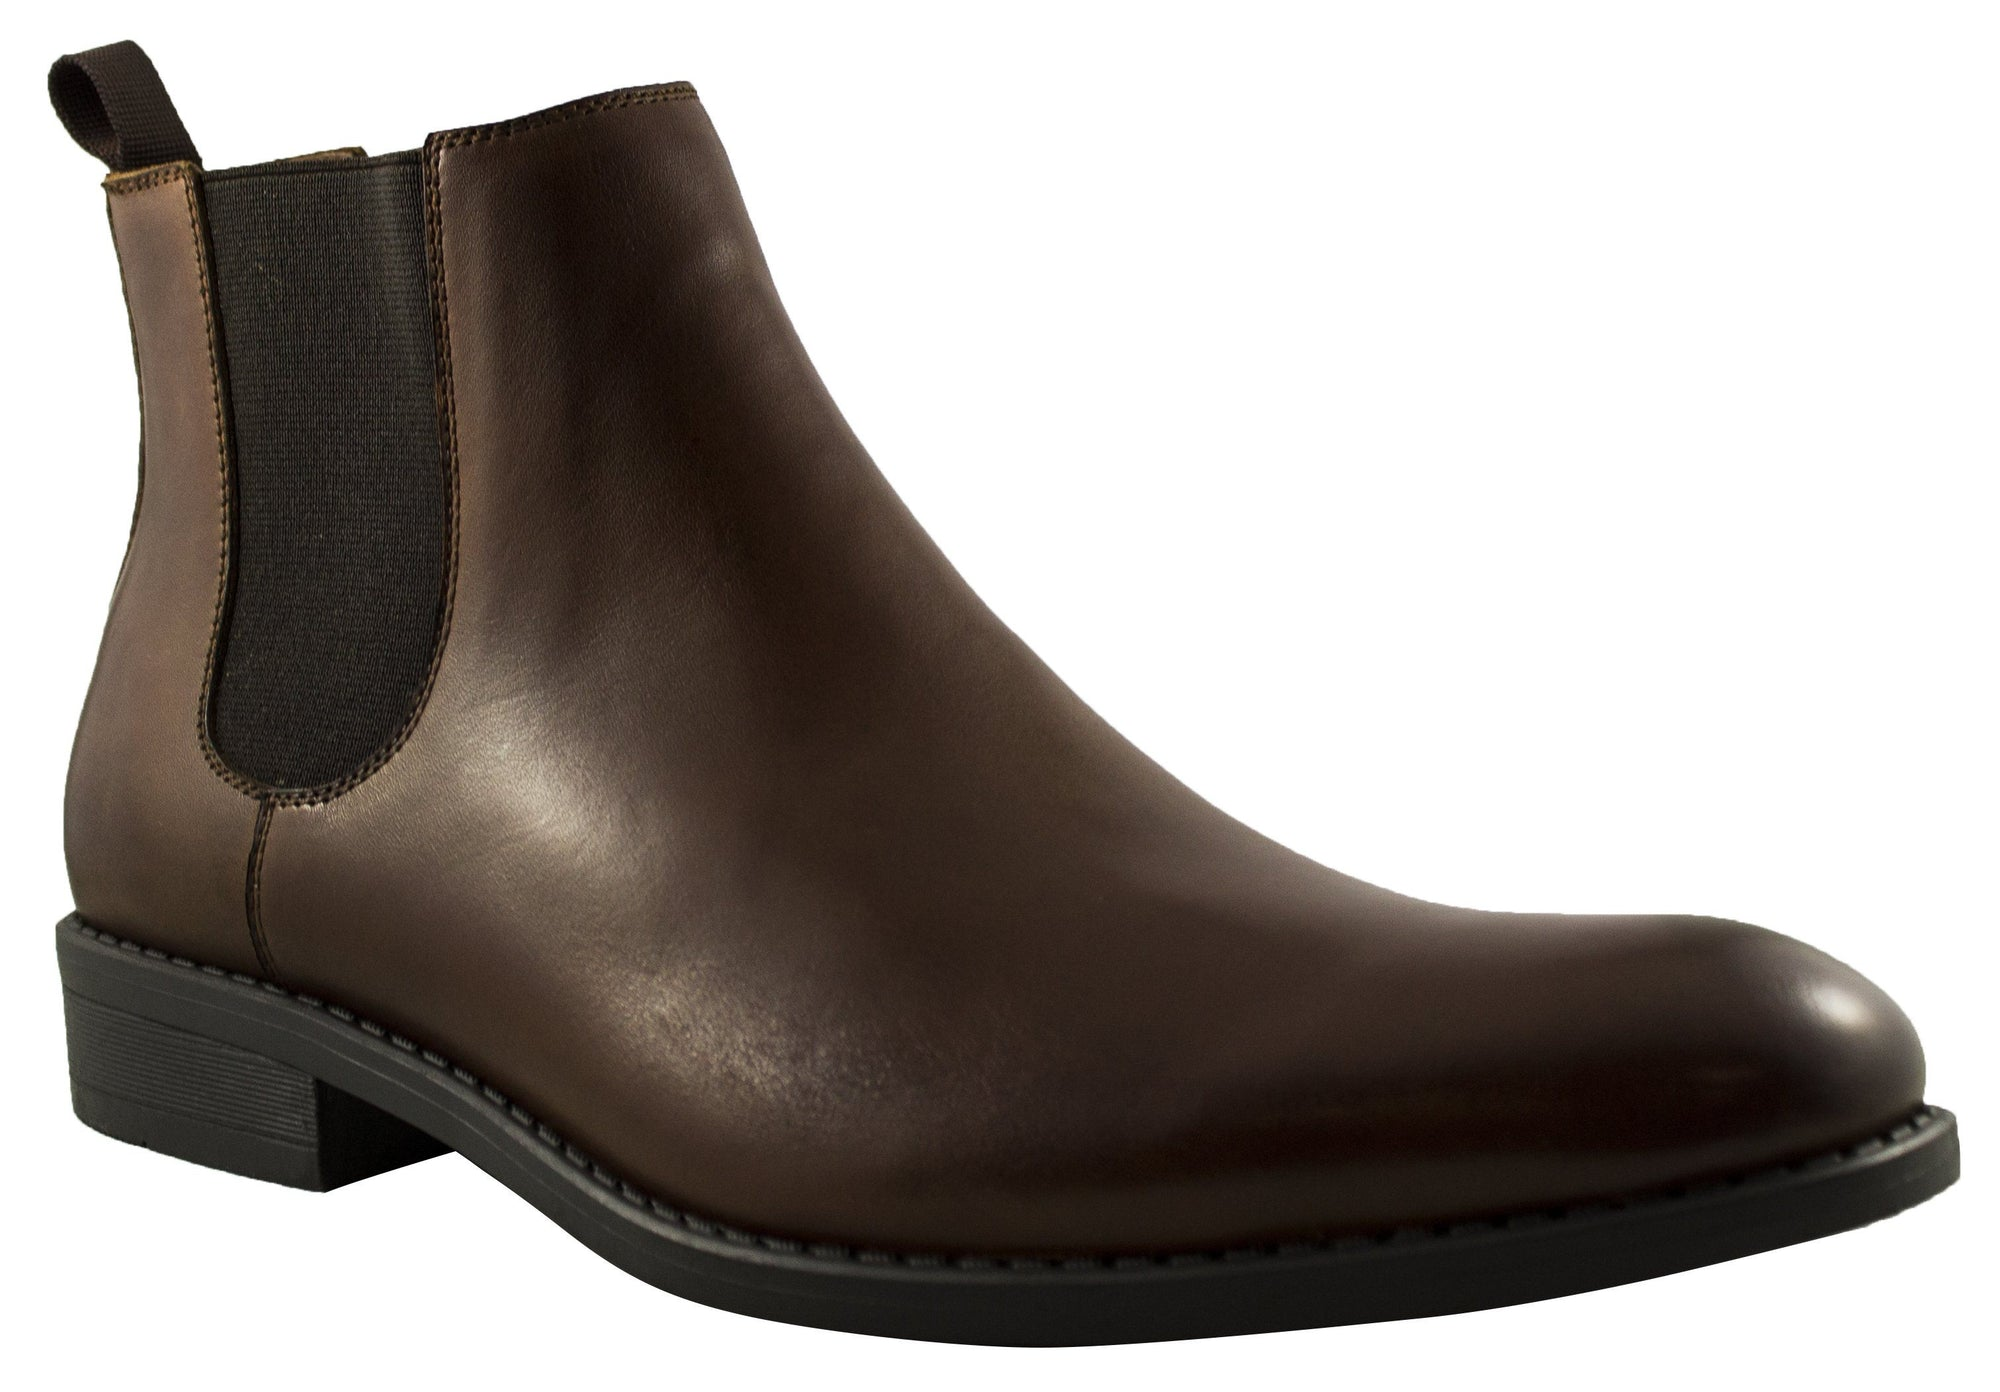 Geoffrey Beene - Harlem Leather Chelsea Boot - Tan Footwear Geoffrey Beene